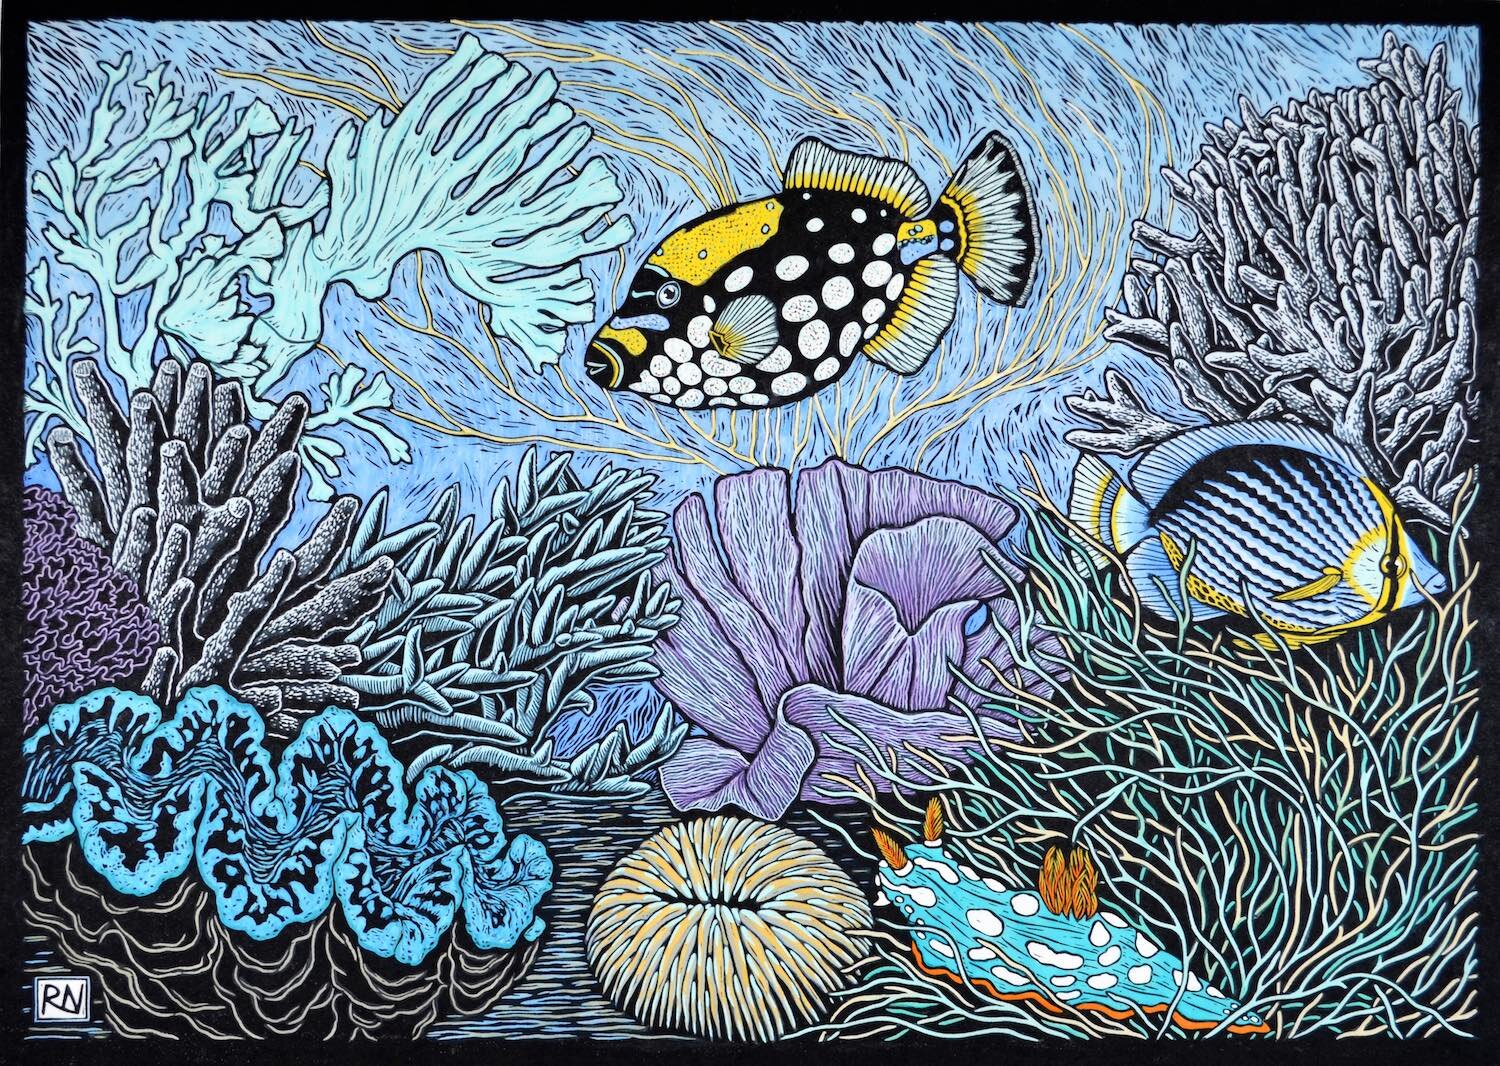 Coral reef  53 X 74 CM, Edition of 50  Hand-Coloured linocut on handmade japanese paper  $1,700